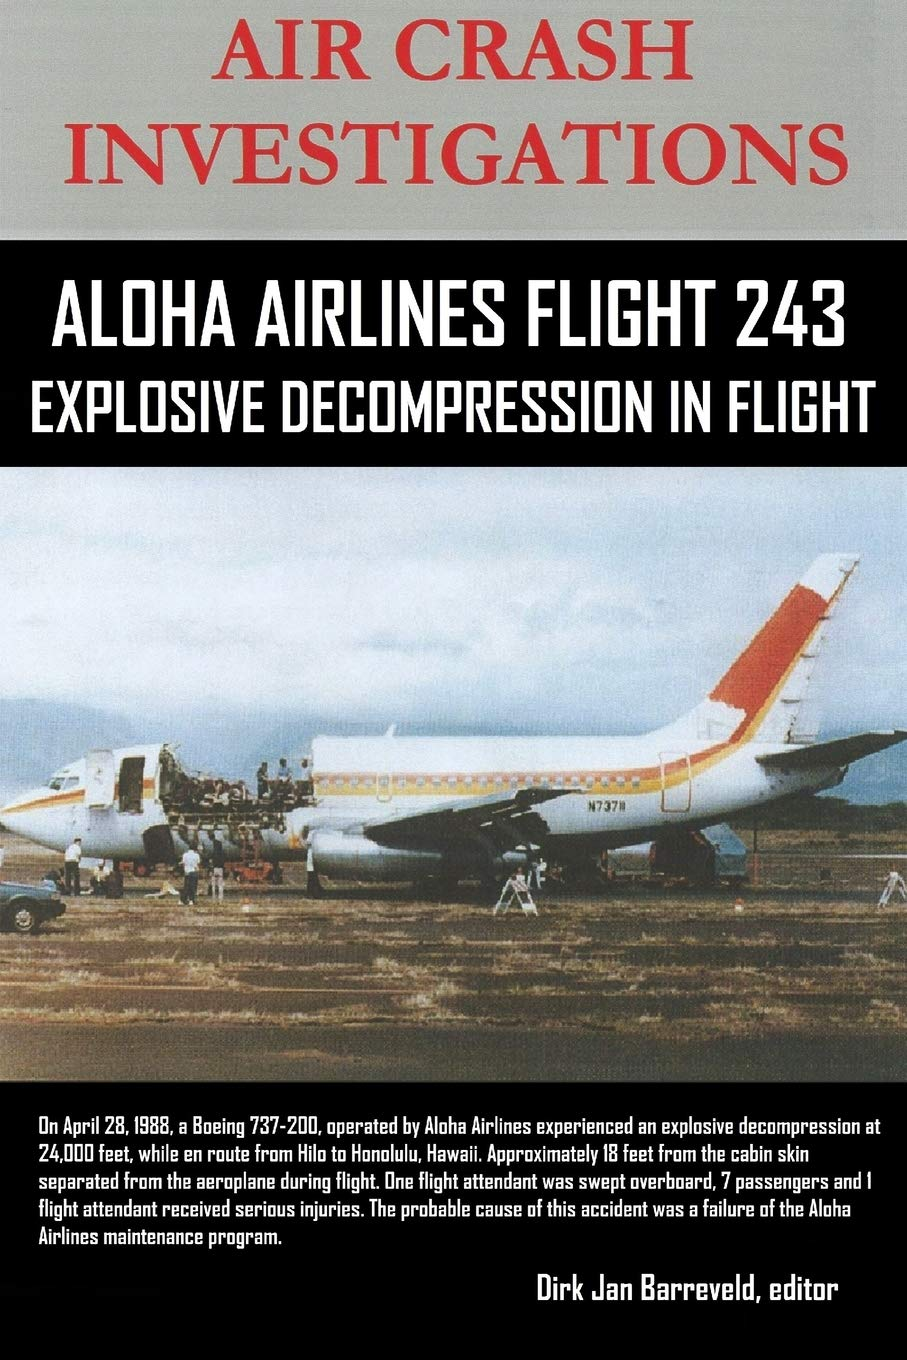 Buy Air Crash Investigations Aloha Airlines Flight 243 Explosive Decompression In Flight Book Online At Low Prices In India Air Crash Investigations Aloha Airlines Flight 243 Explosive Decompression In Flight Reviews Ratings Amazon In